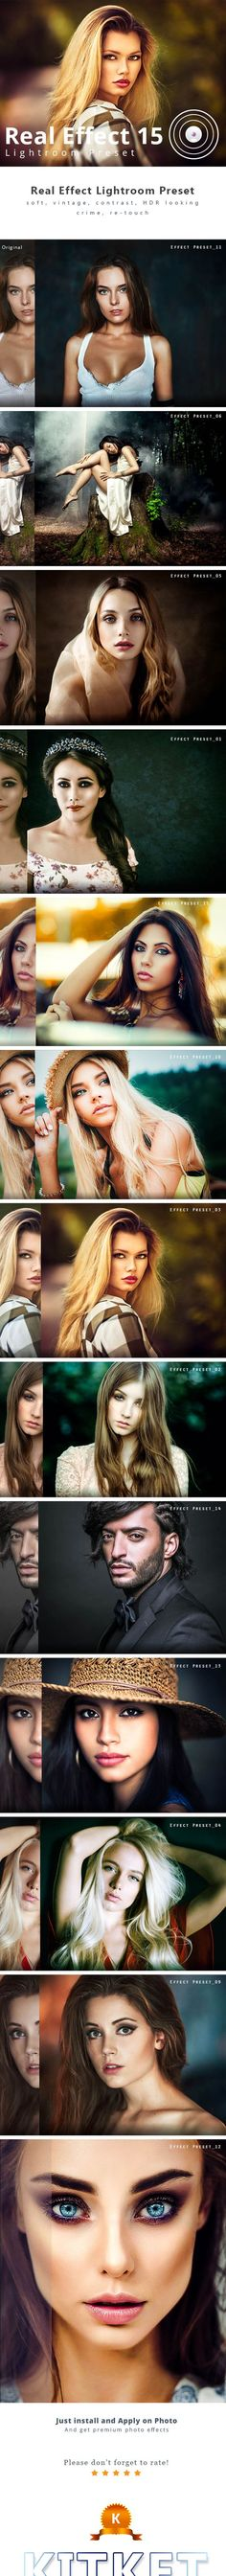 Real Effect 15 Photography Lightroom Preset - Lightroom Presets Add-ons